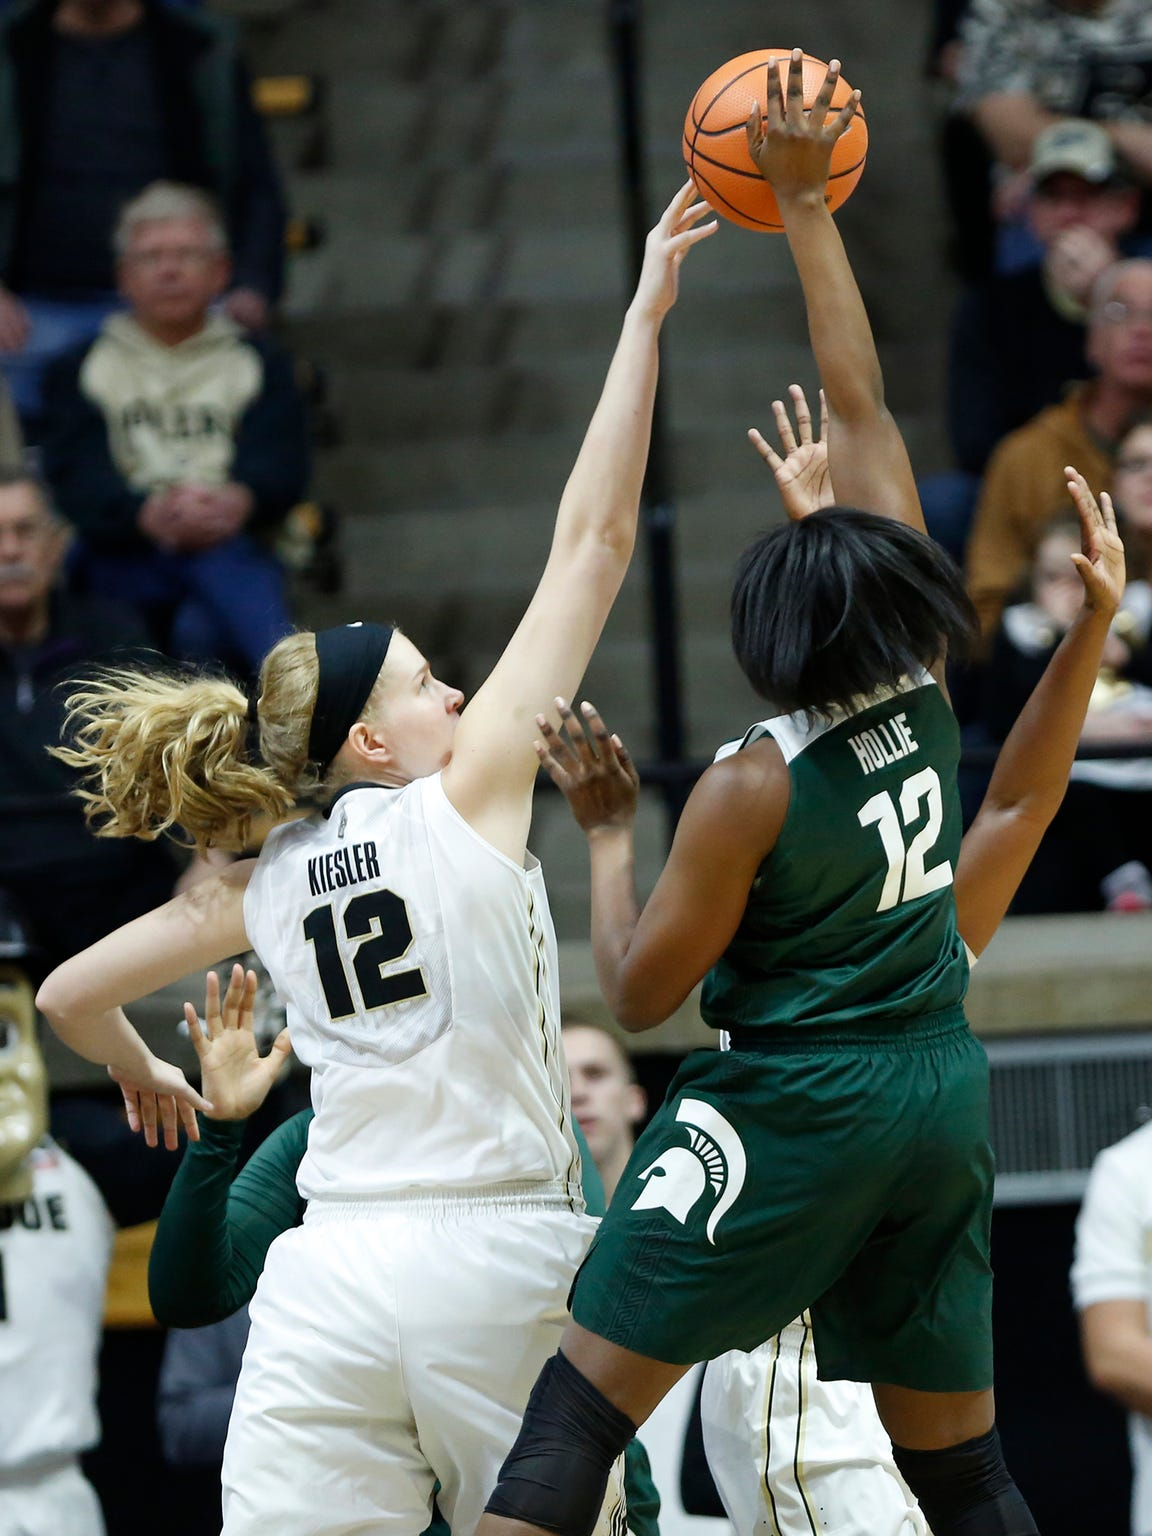 Nora Kiesler of Purdue blocks a shot by Nia Hollie of Michigan State Saturday, February 24, 2018, at Mackey Arena. Purdue fell to Michigan State 82-68.